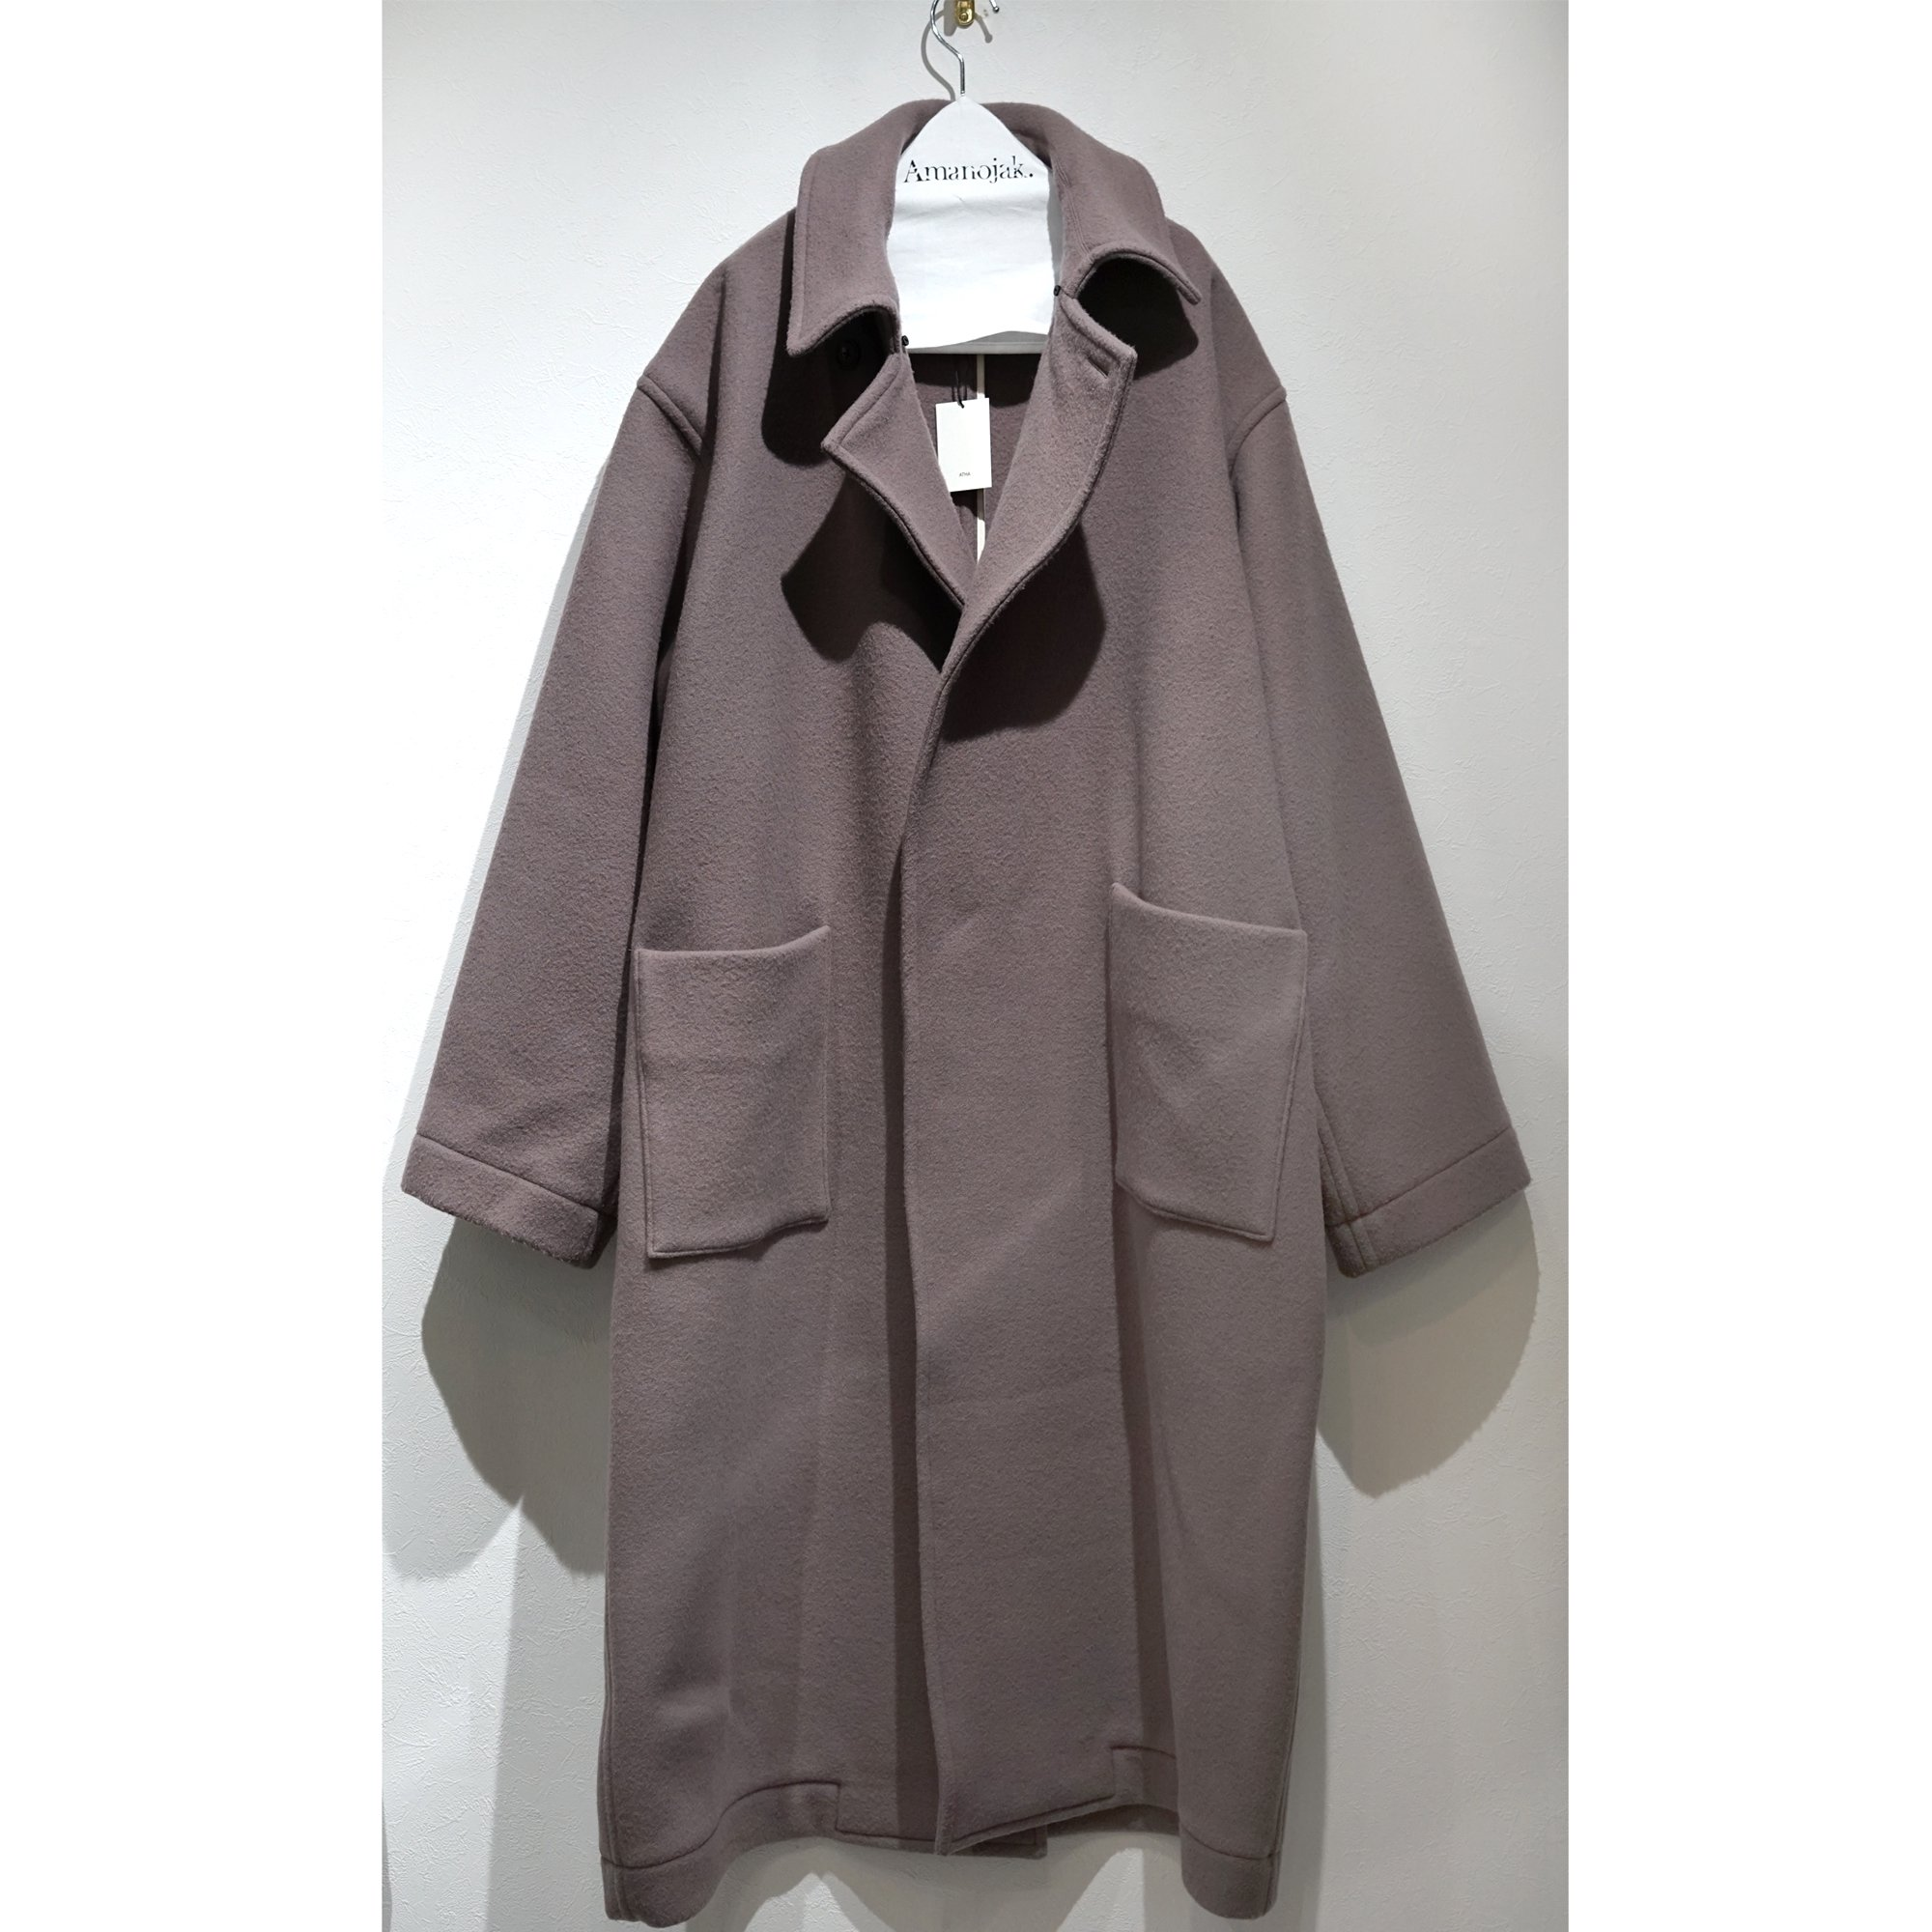 【3/24まで受注受付】ATHA-DOUBLE MELTON MAXI COAT TAN